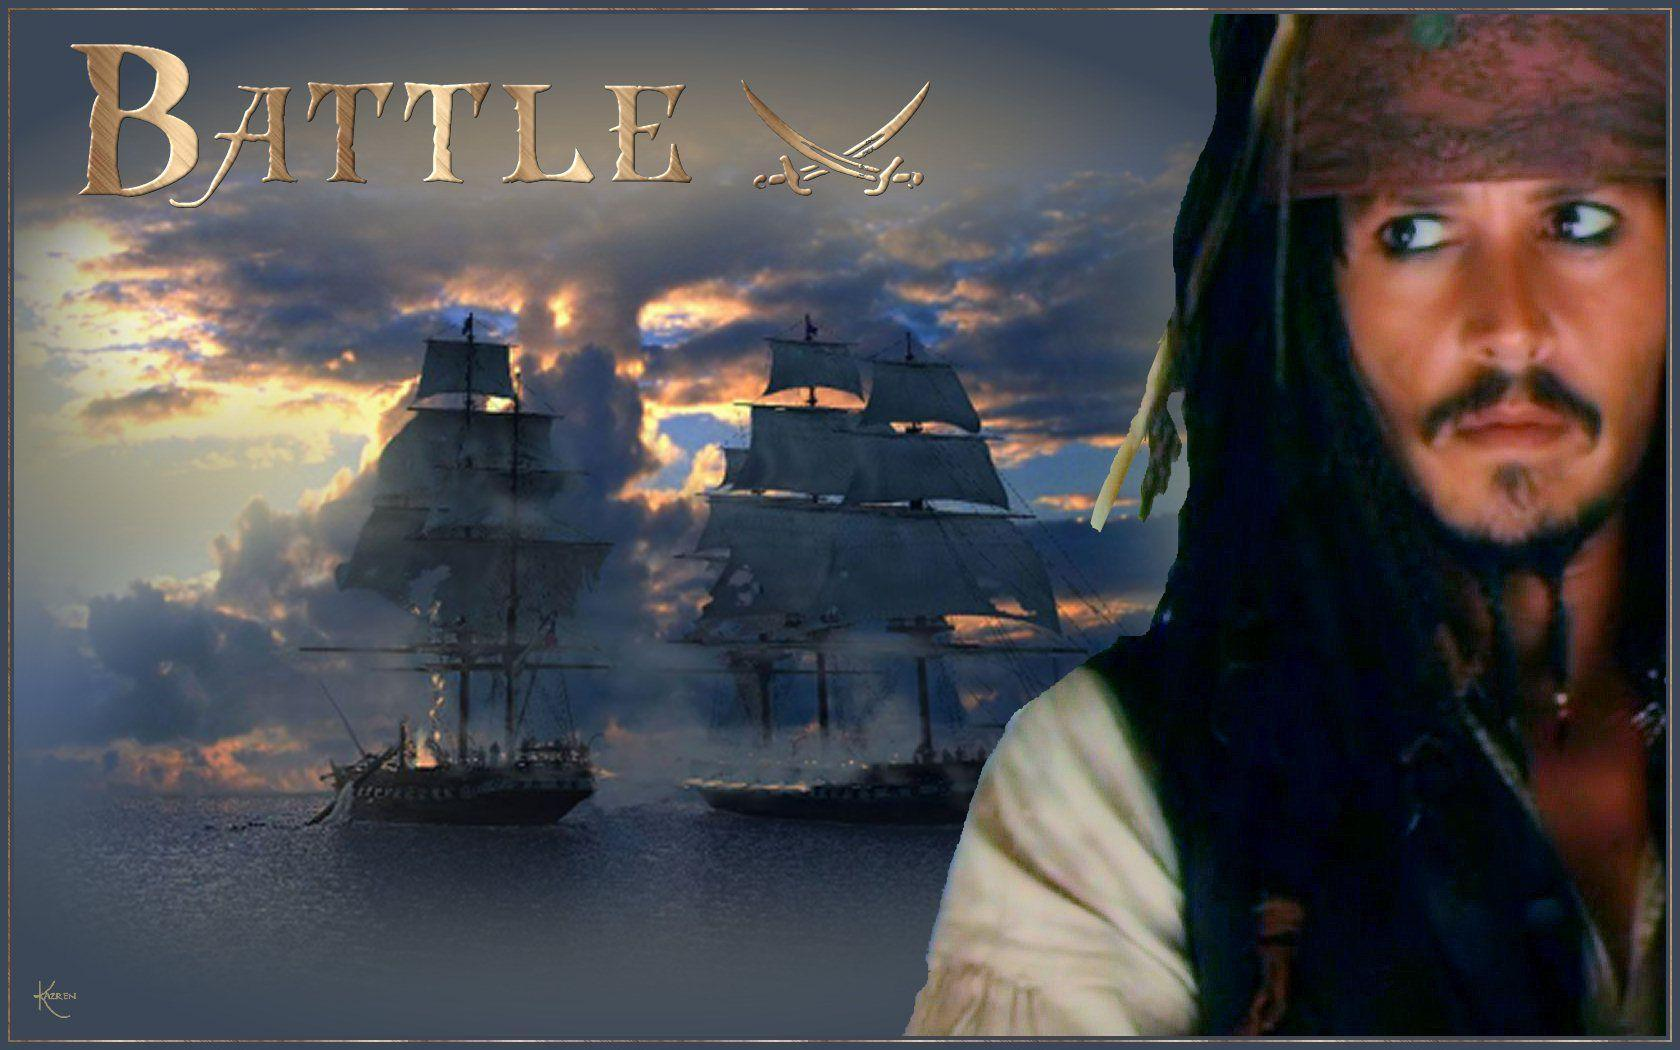 Jack sparrow - Captain Jack Sparrow Wallpaper (27970654) - Fanpop